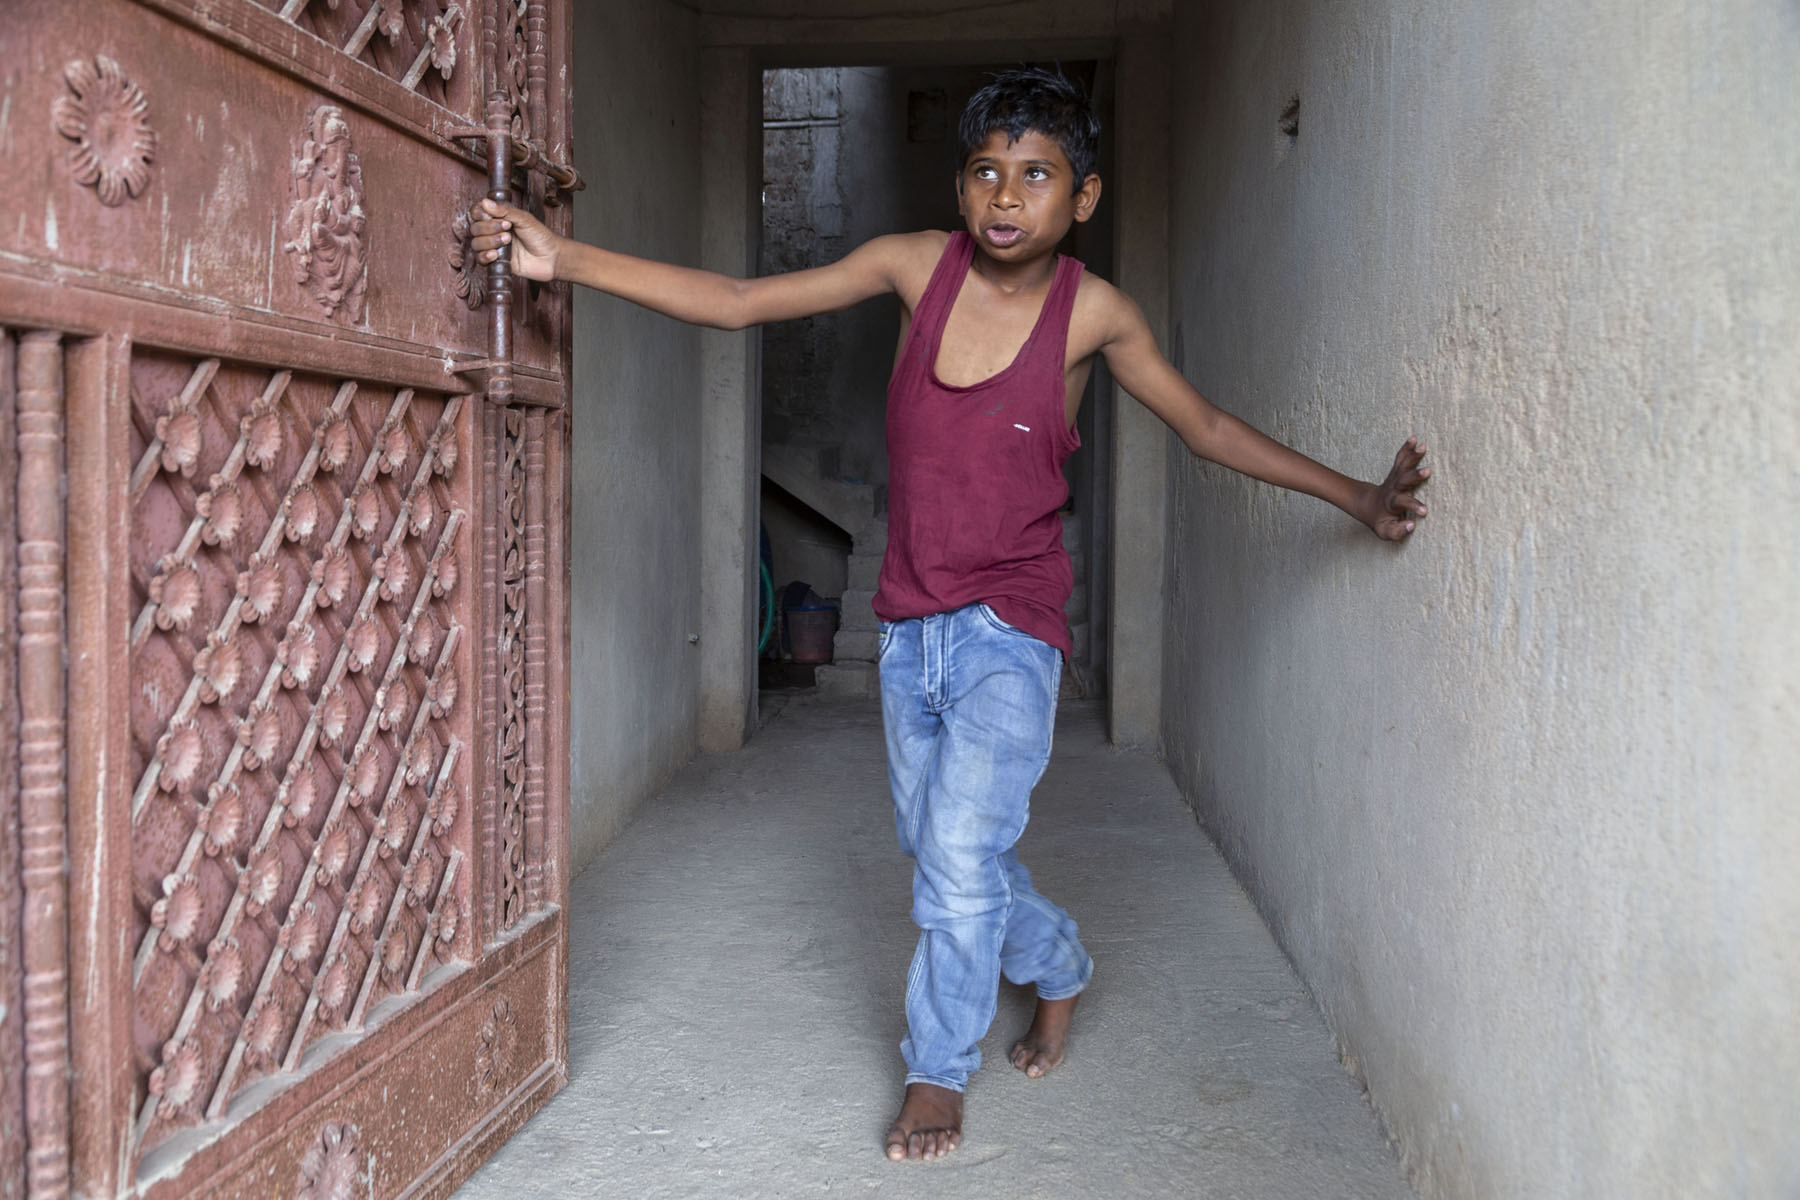 Aman Kumar Mahto, in maroon vest and light blue jeans, stands next to an open, decoratively carved door. His right hand holds the door handle and his left hand touches the wall.